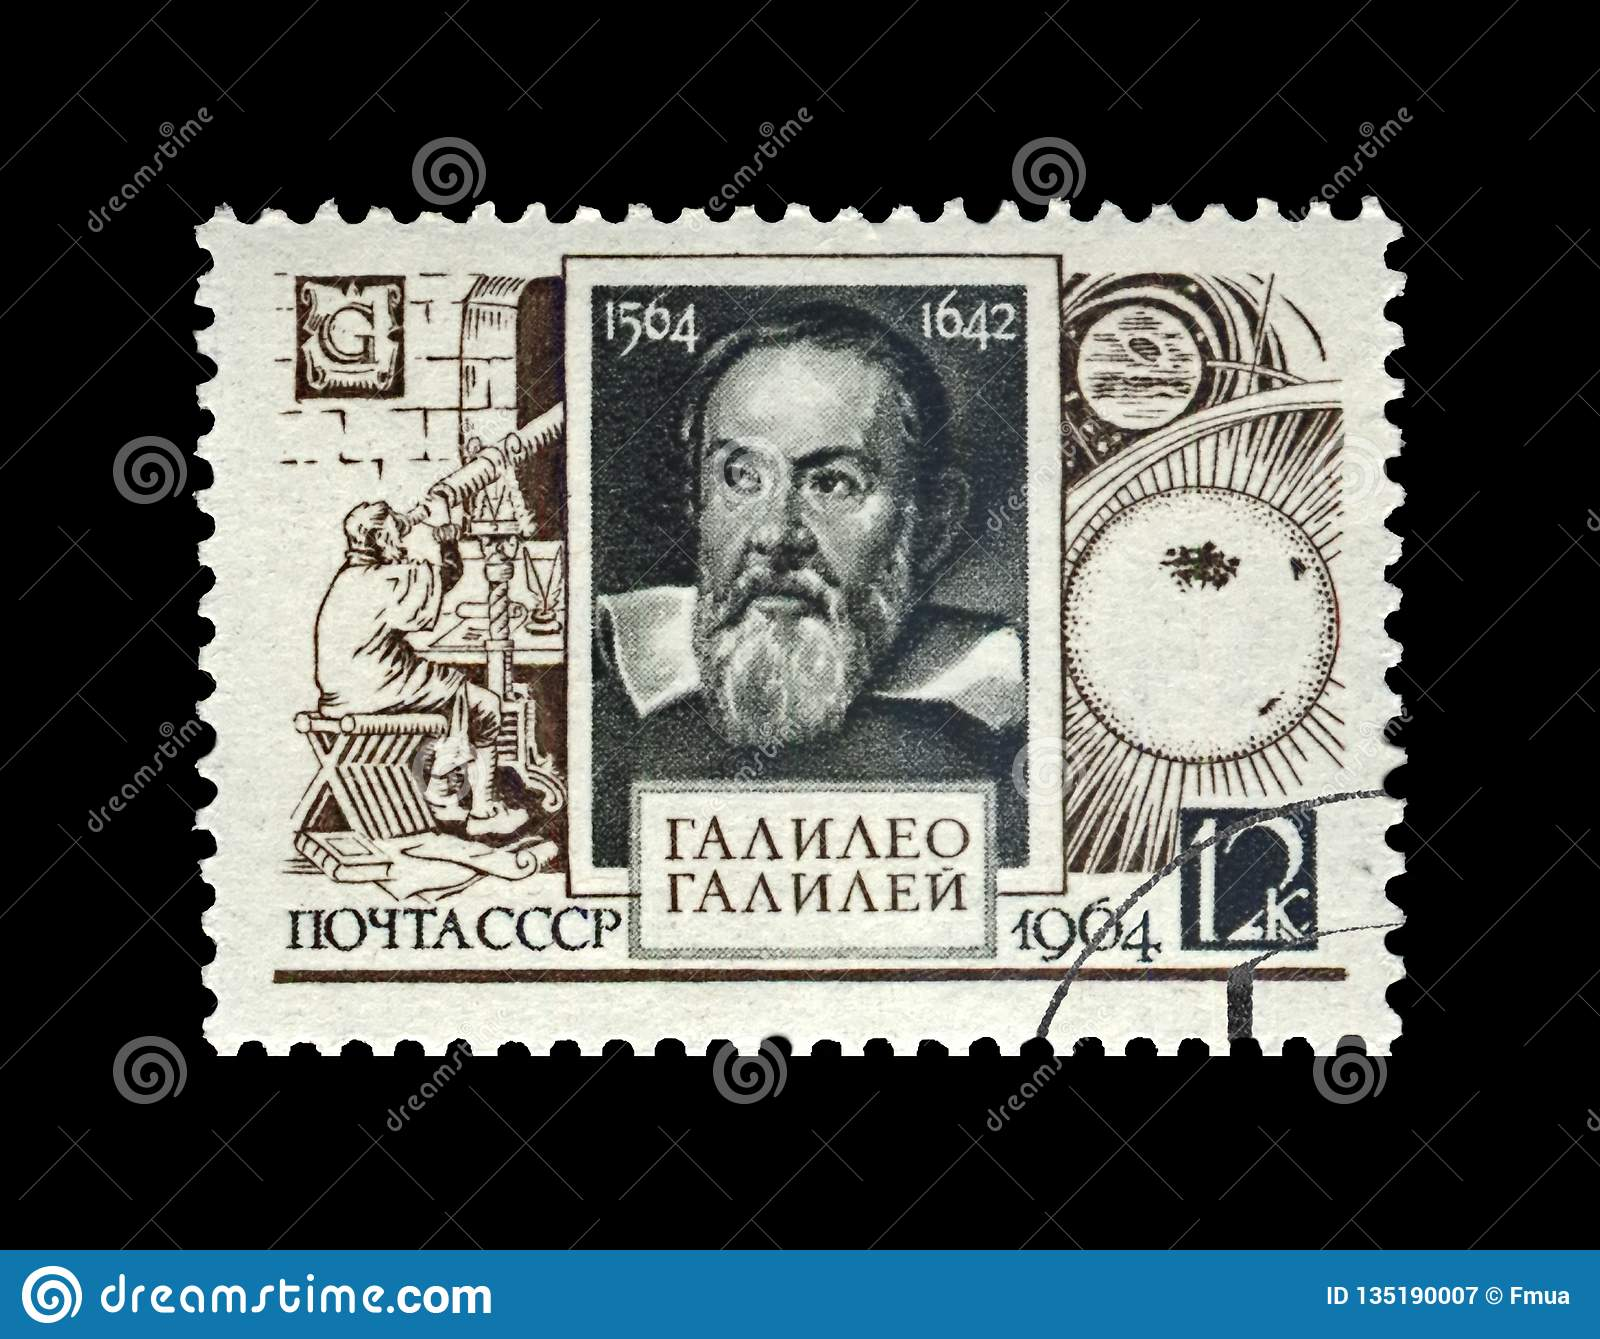 Galileo Galilei , famous italian astronomer, physicist and engineer, USSR, circa 1964,